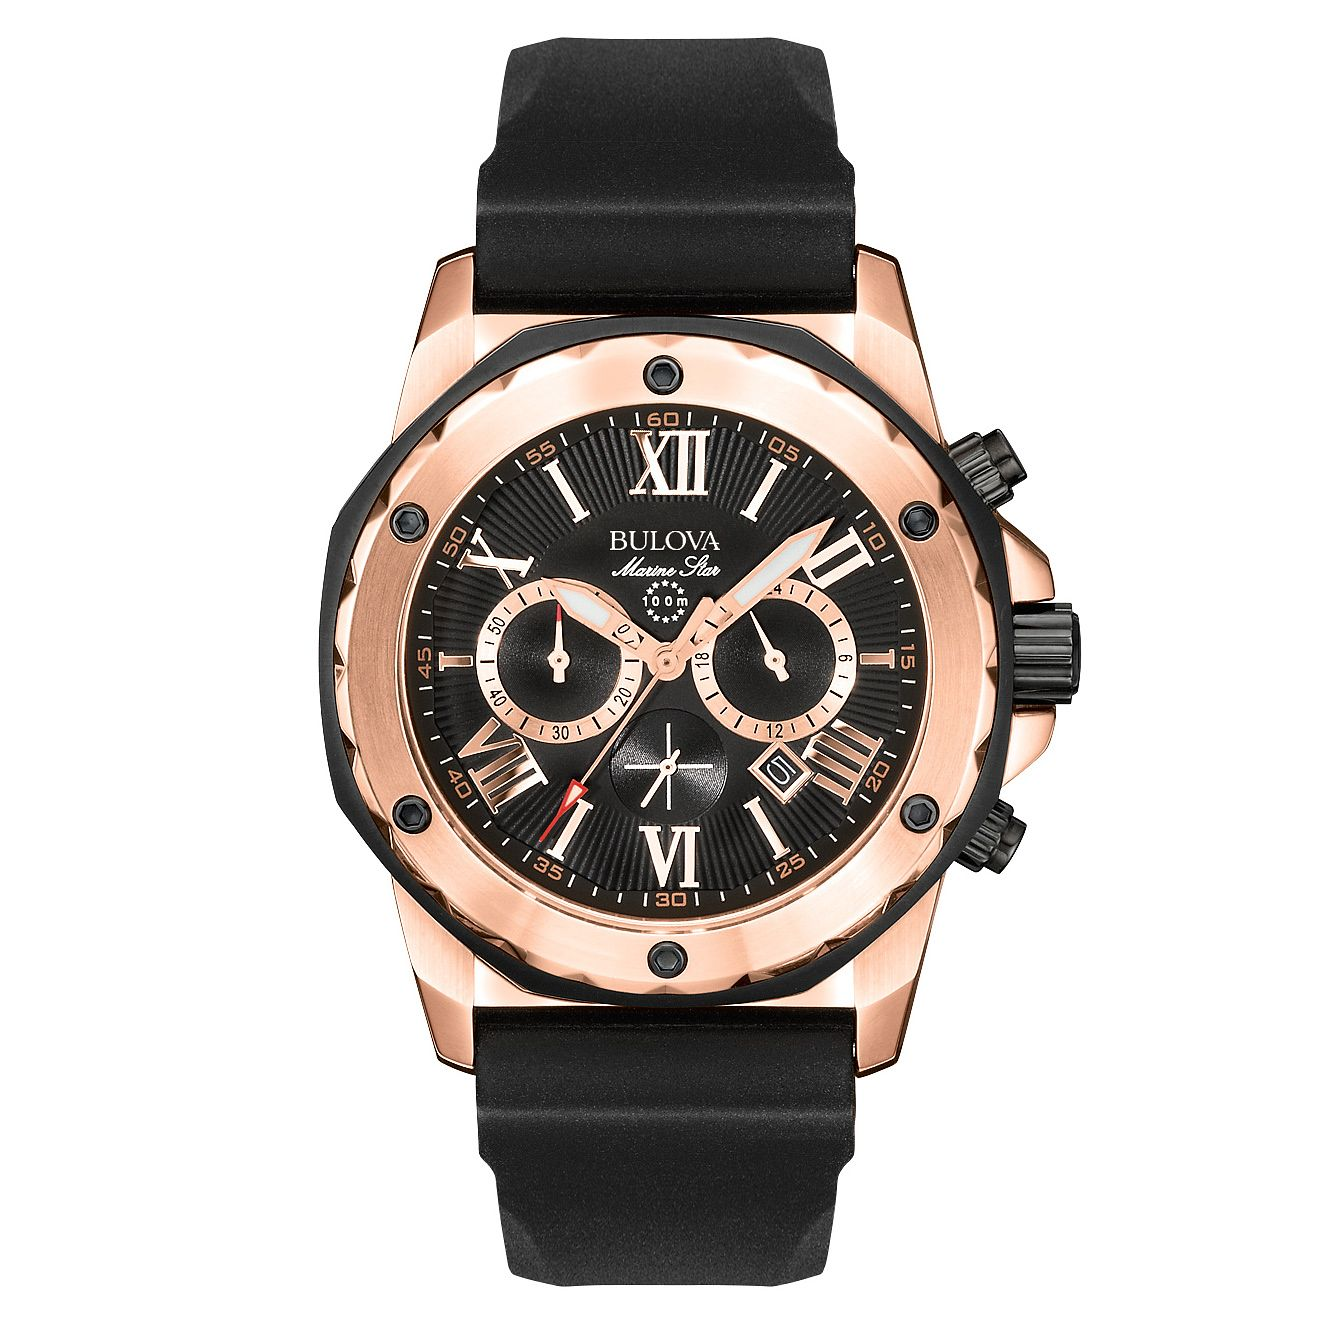 Bulova Marine Star Men's Black Rubber Strap Watch - Product number 2293021